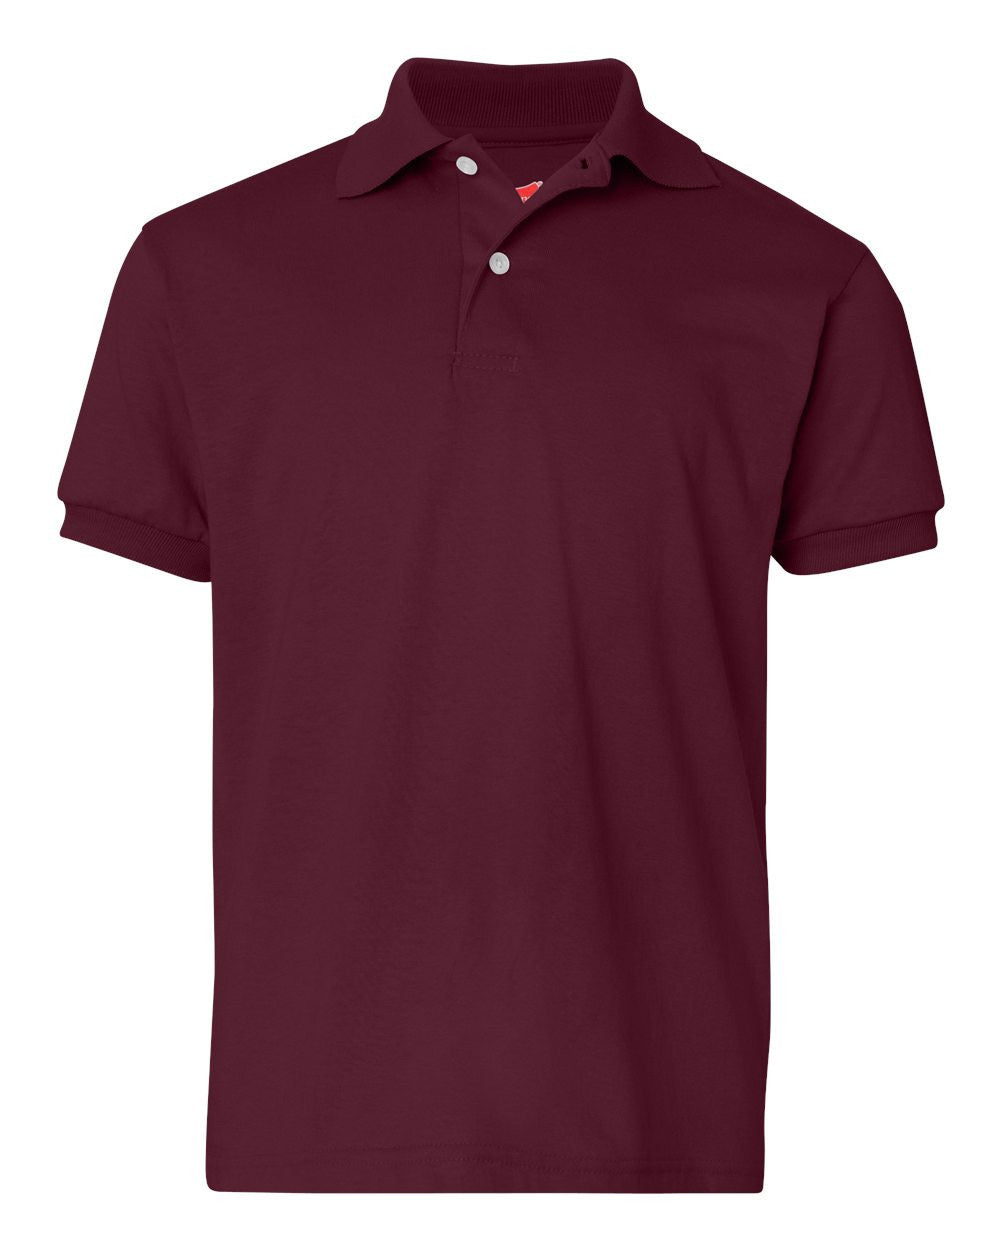 4 pack : Youth Polos by Hanes - Discountedrack.com